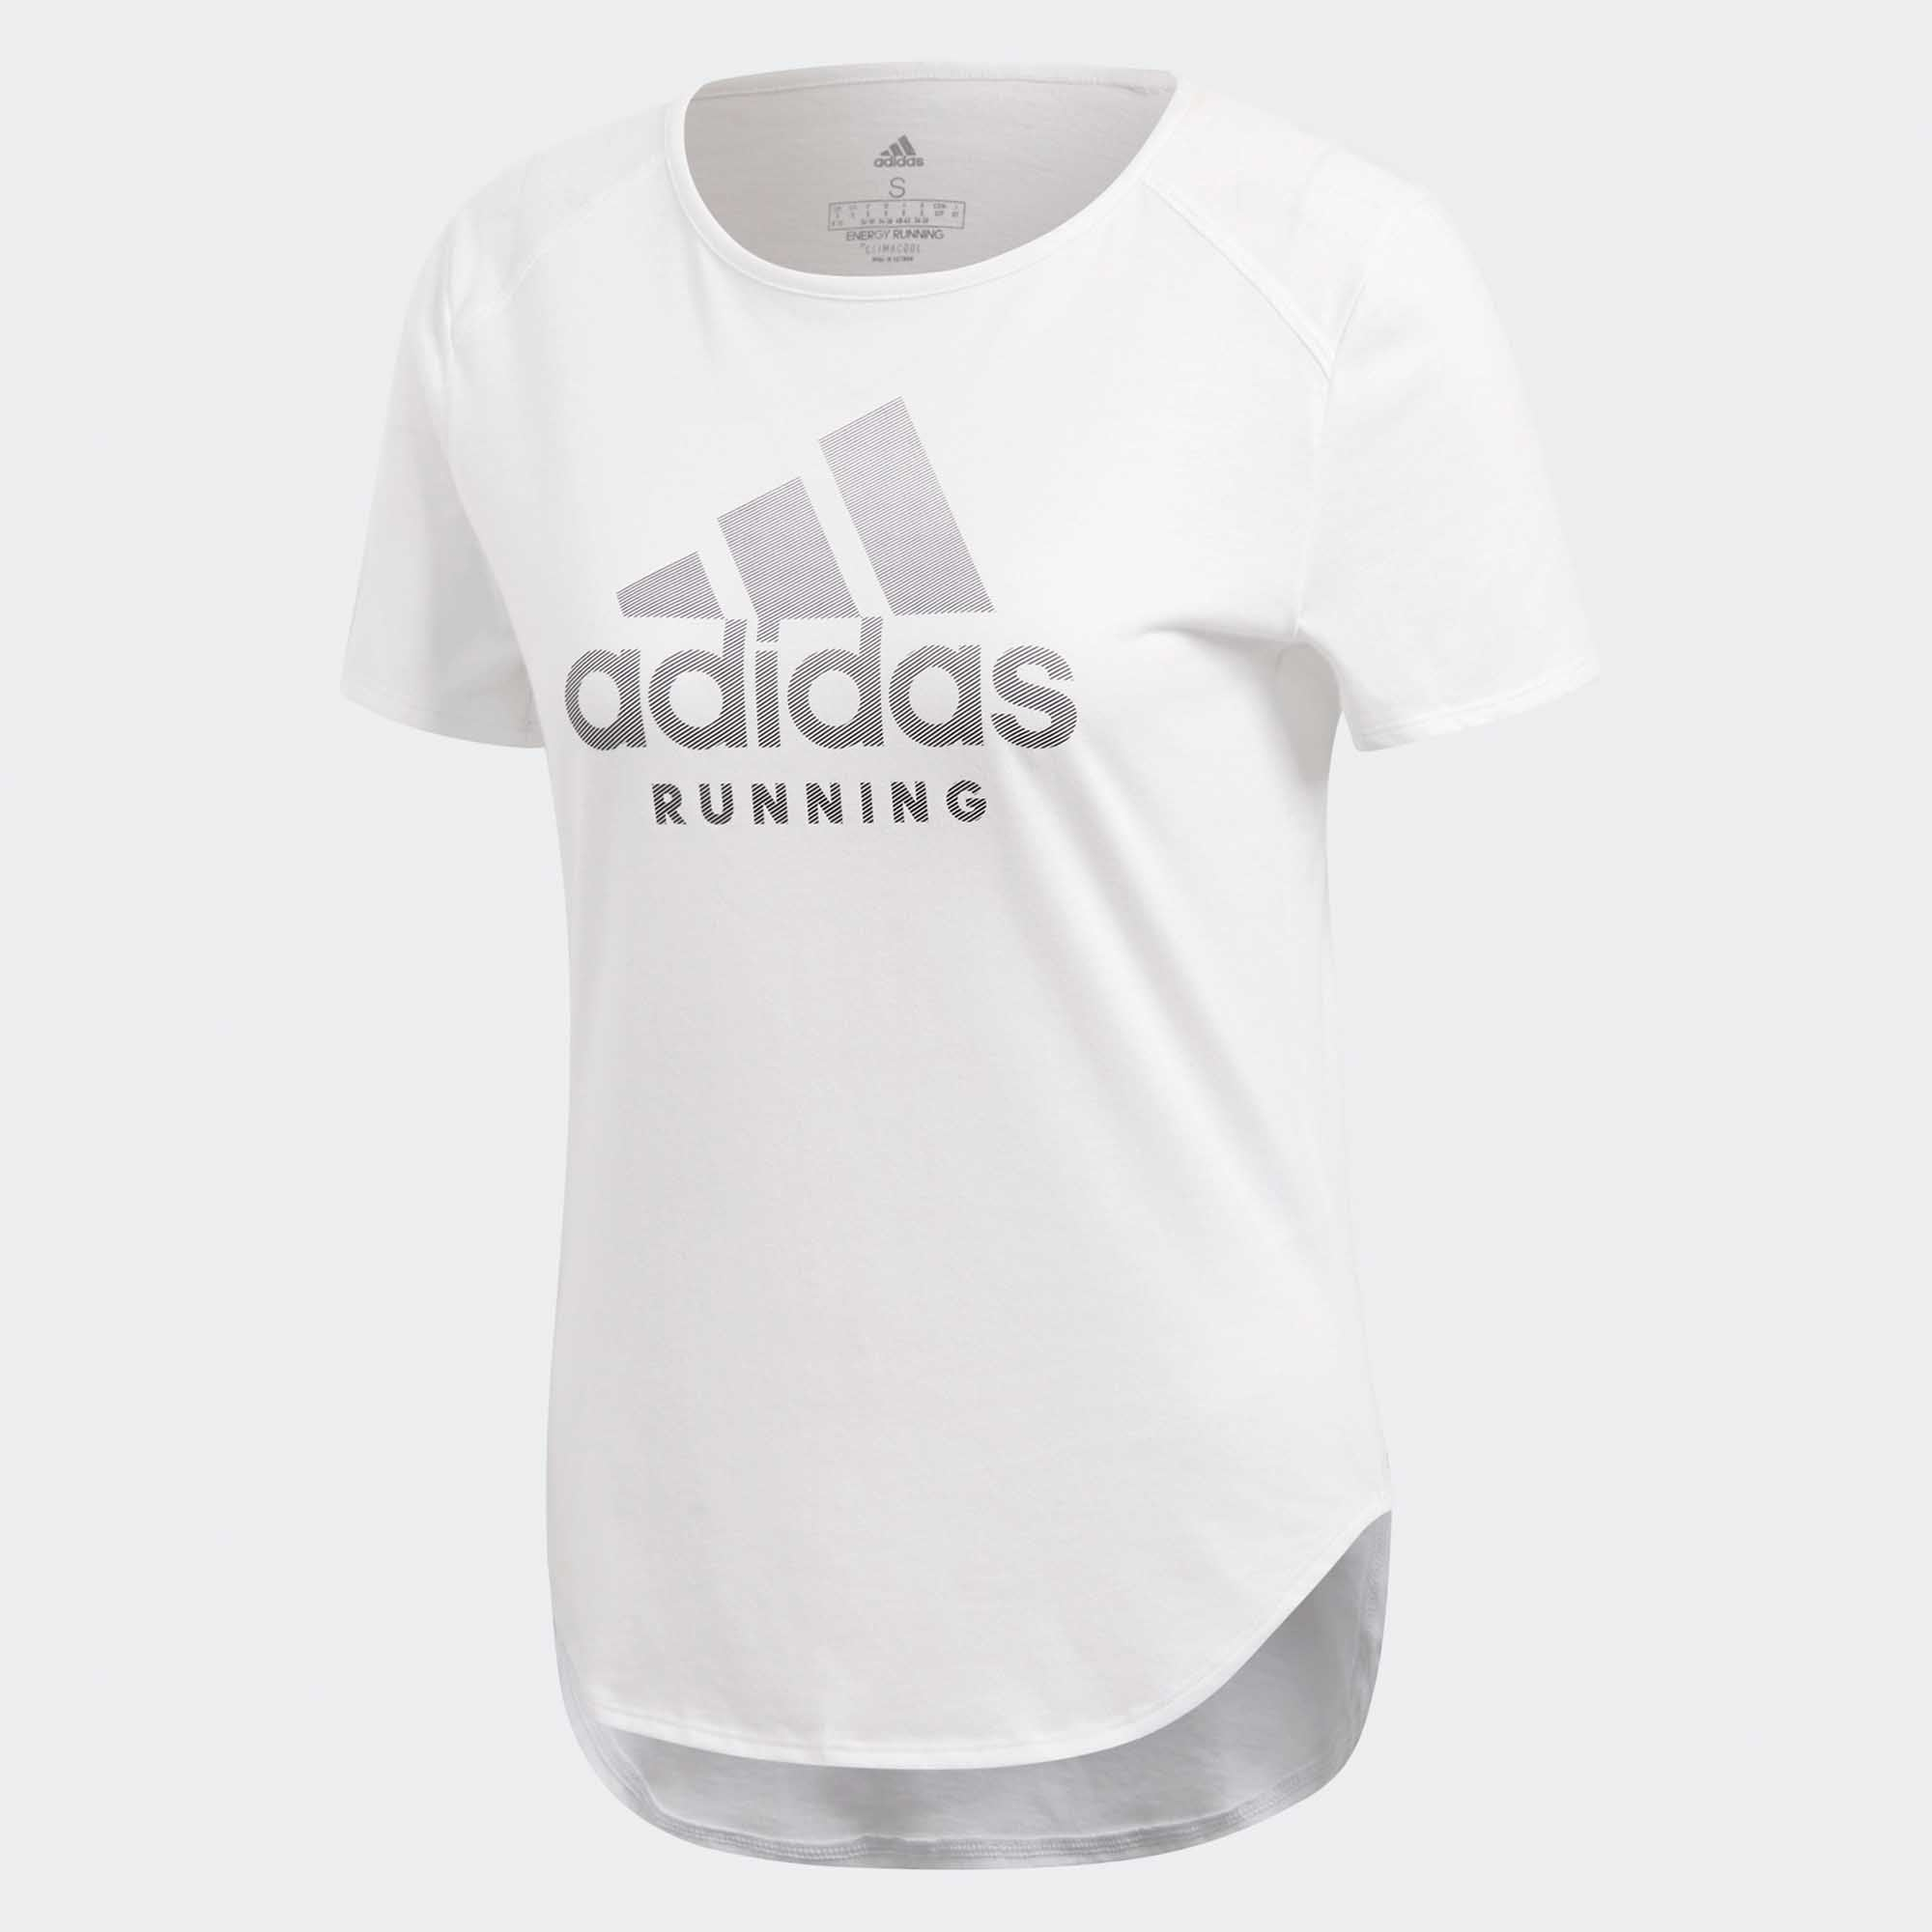 358d18dc adidas Shoes & Sportswear Online in Singapore | Royal Sporting House